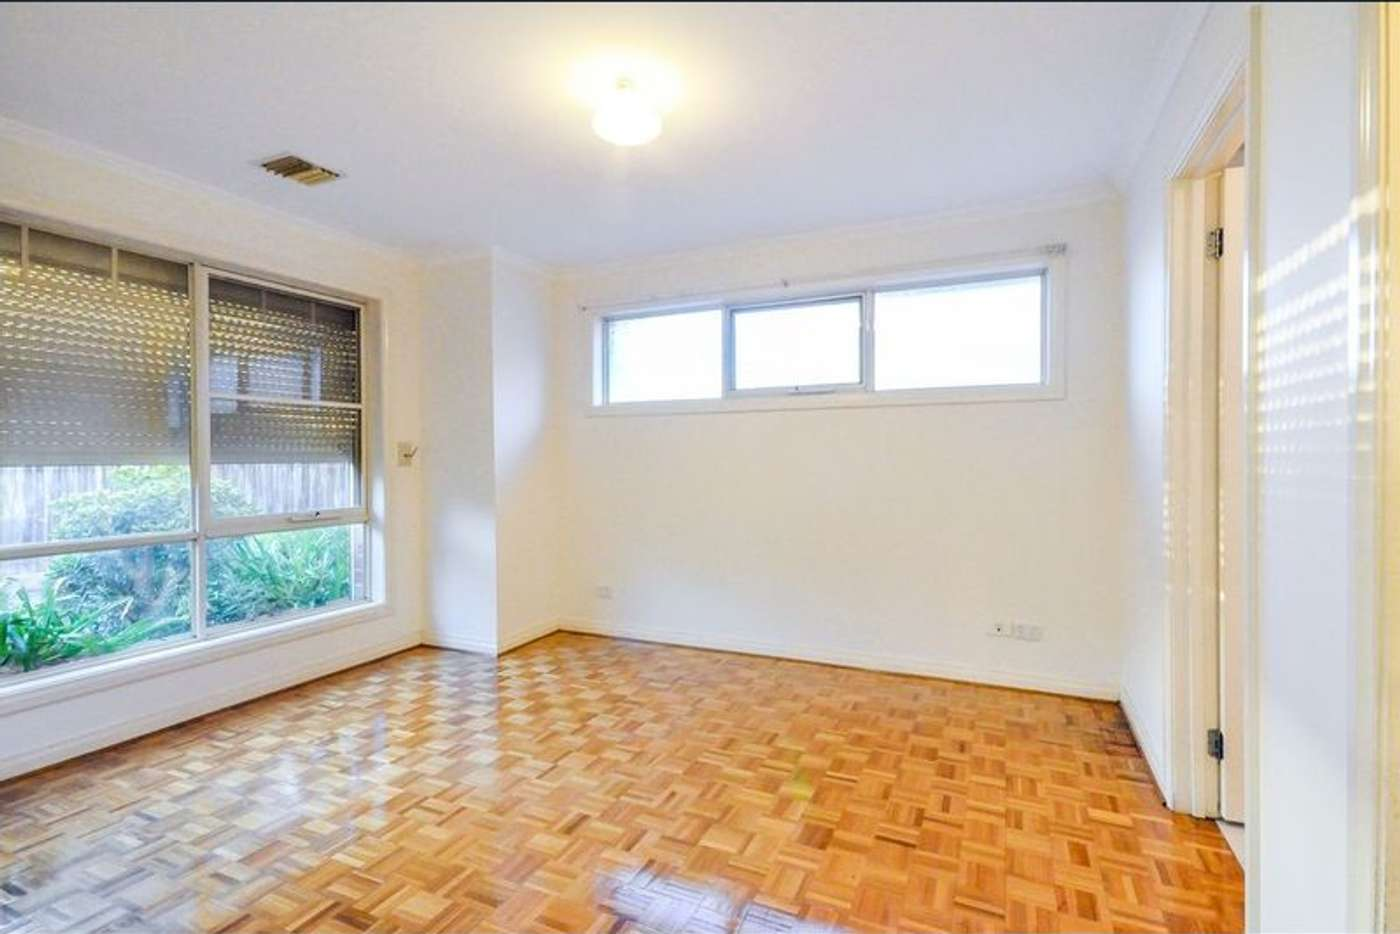 Fifth view of Homely unit listing, 2/108 Severn Street, Box Hill North VIC 3129